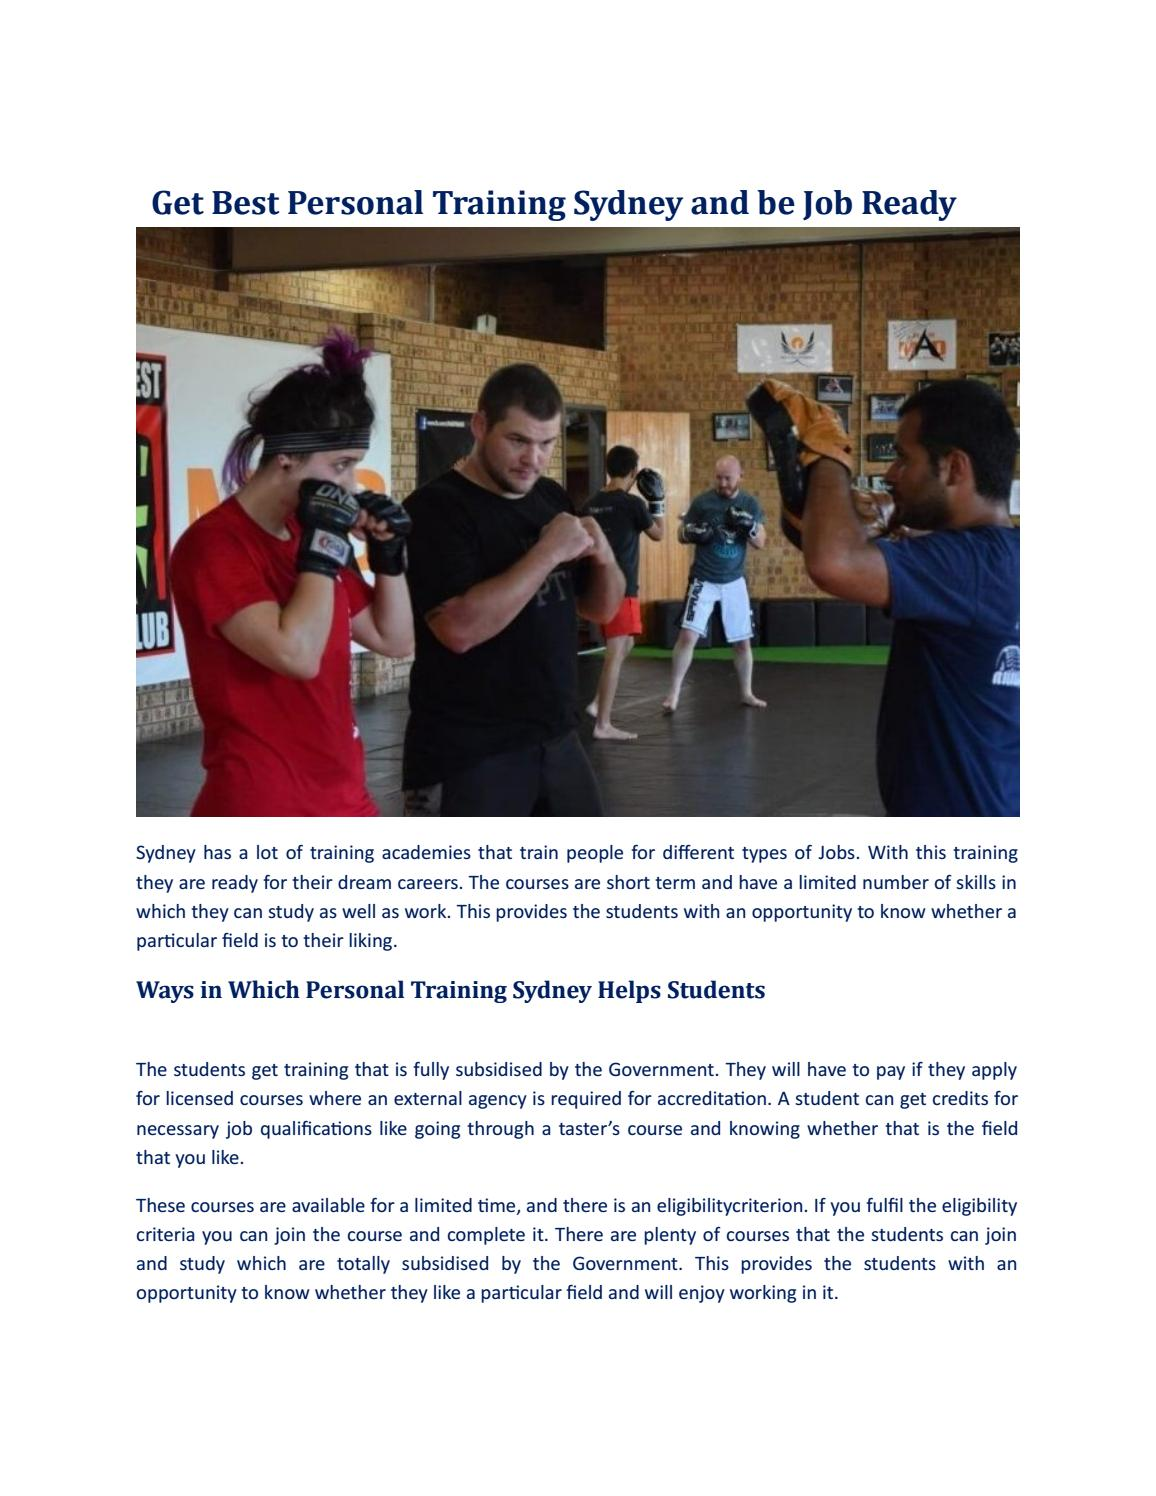 Get best personal training sydney and be job ready by martial arts get best personal training sydney and be job ready by martial arts development issuu xflitez Image collections